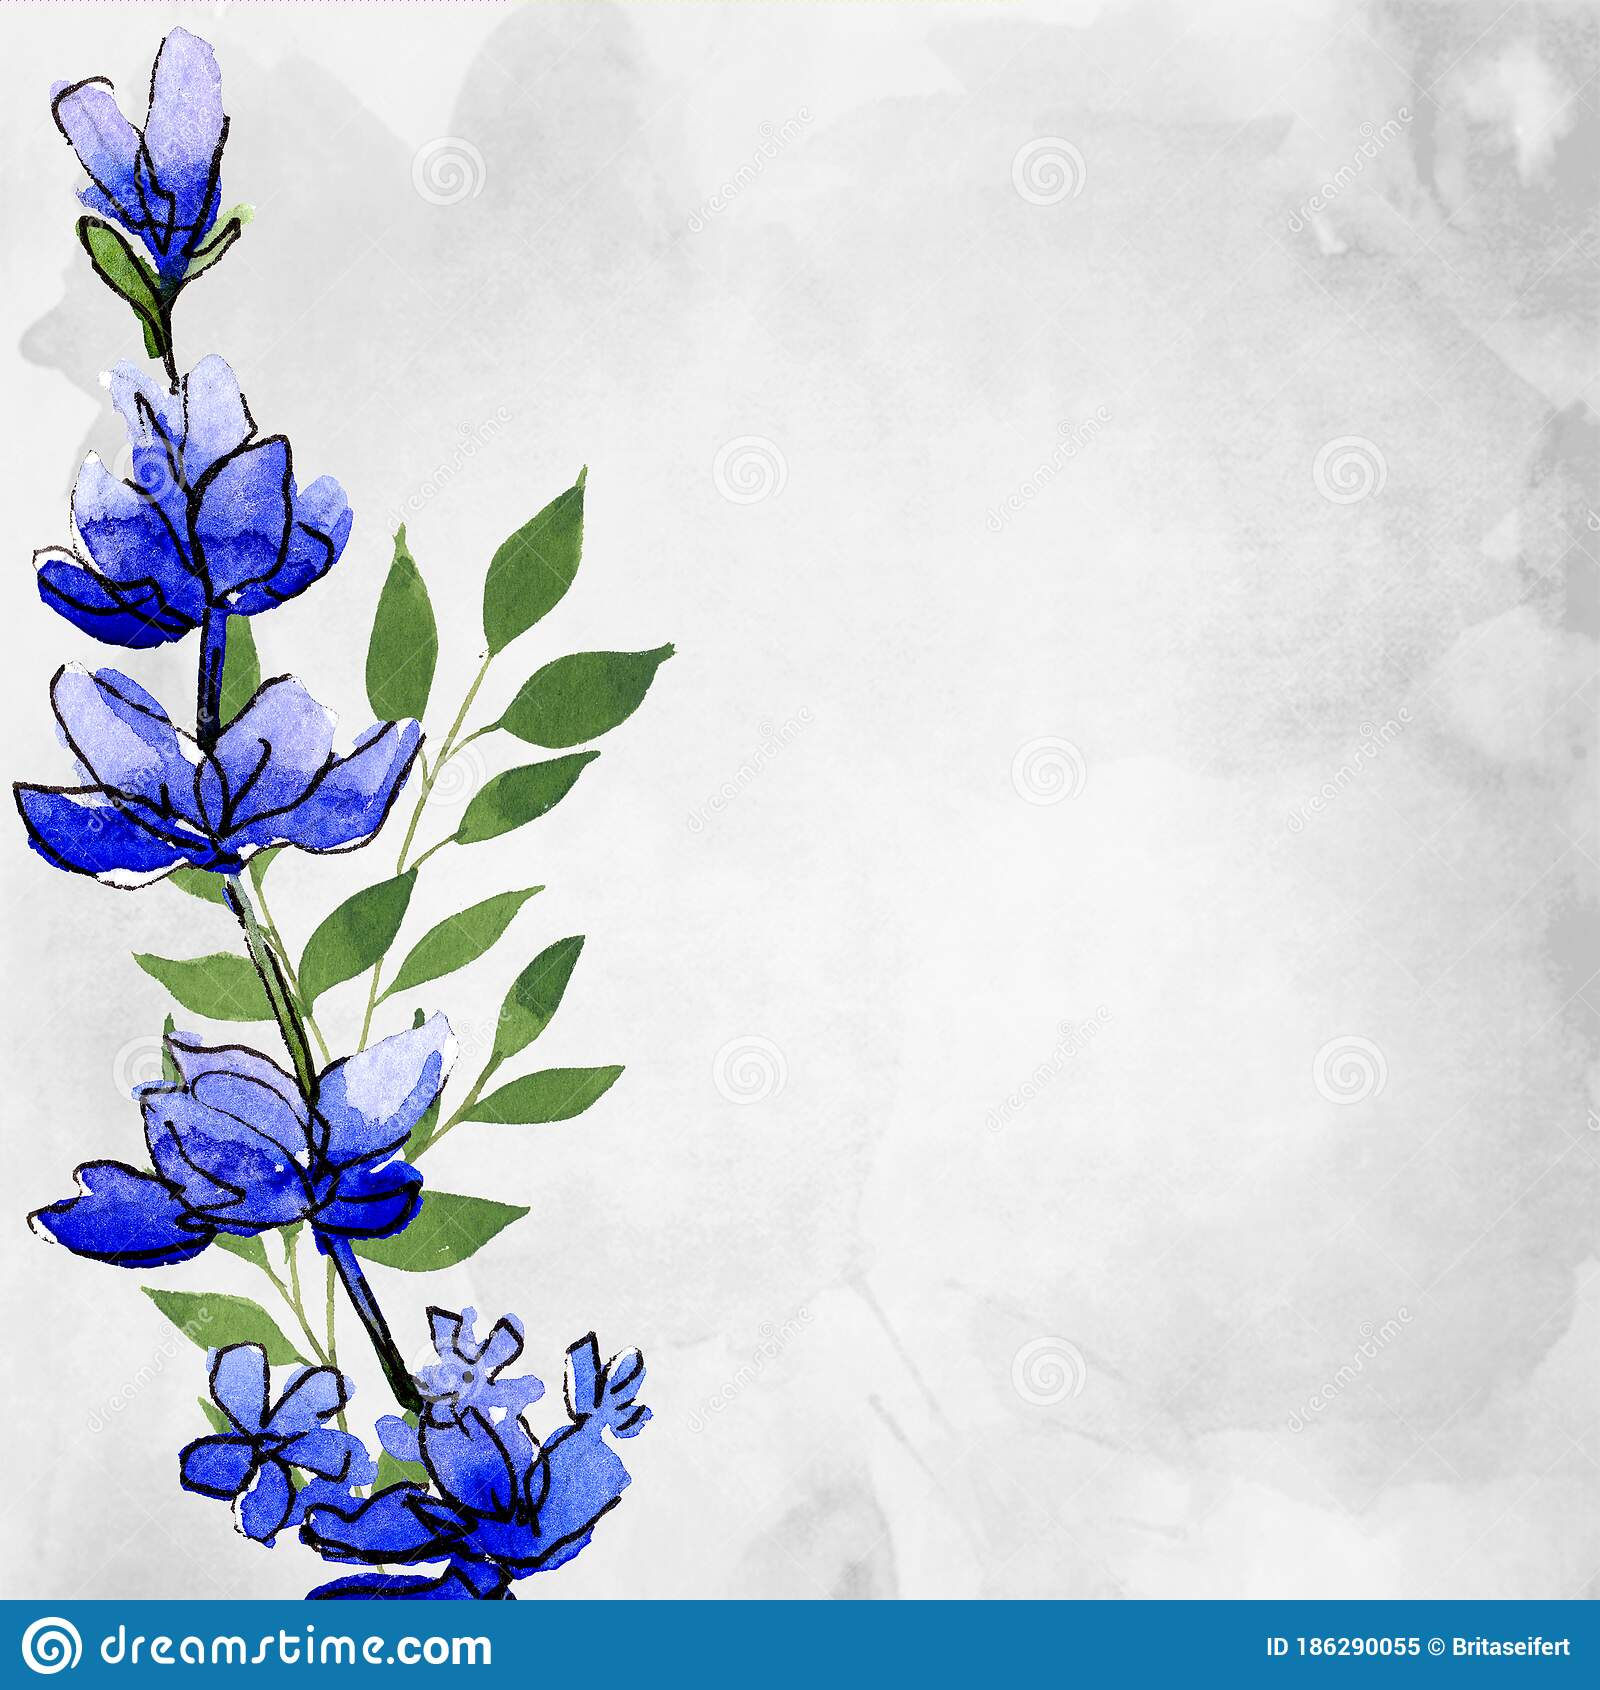 Lavender Flower Twig In Realistic Watercolor Herb Of Lavandula For Bouquet Decoration And Fragrance Floral Illustration Stock Illustration Illustration Of Drawing Aromatherapy 186290055